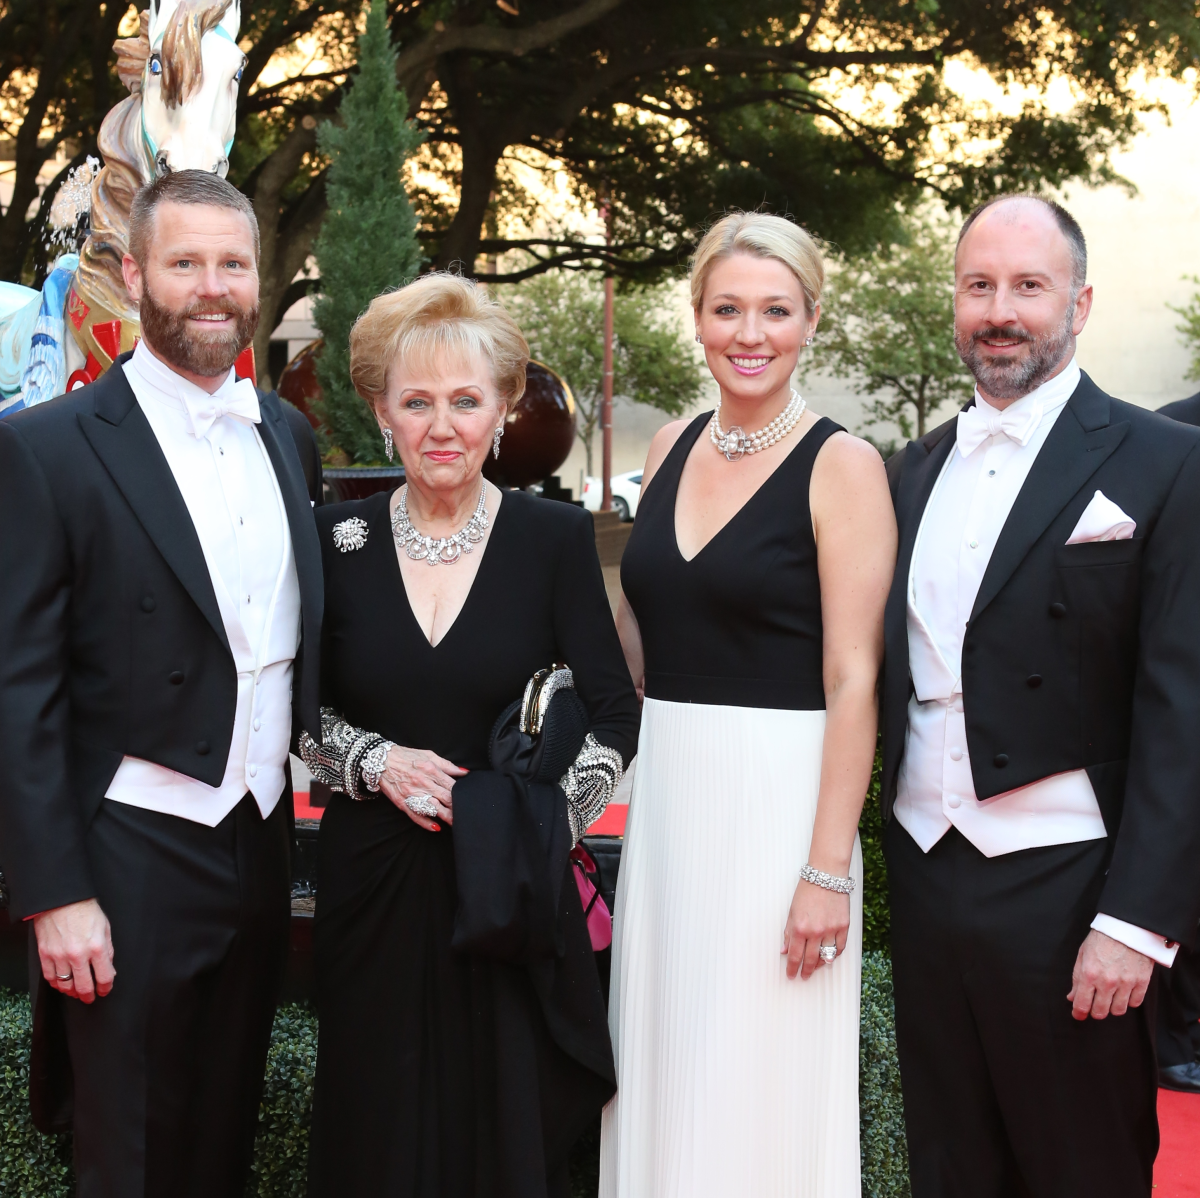 Houston Grand Opera Ball, 4/16 Kevin Black, Marguerite Swartz, Christina Stith, Tony Bradfield